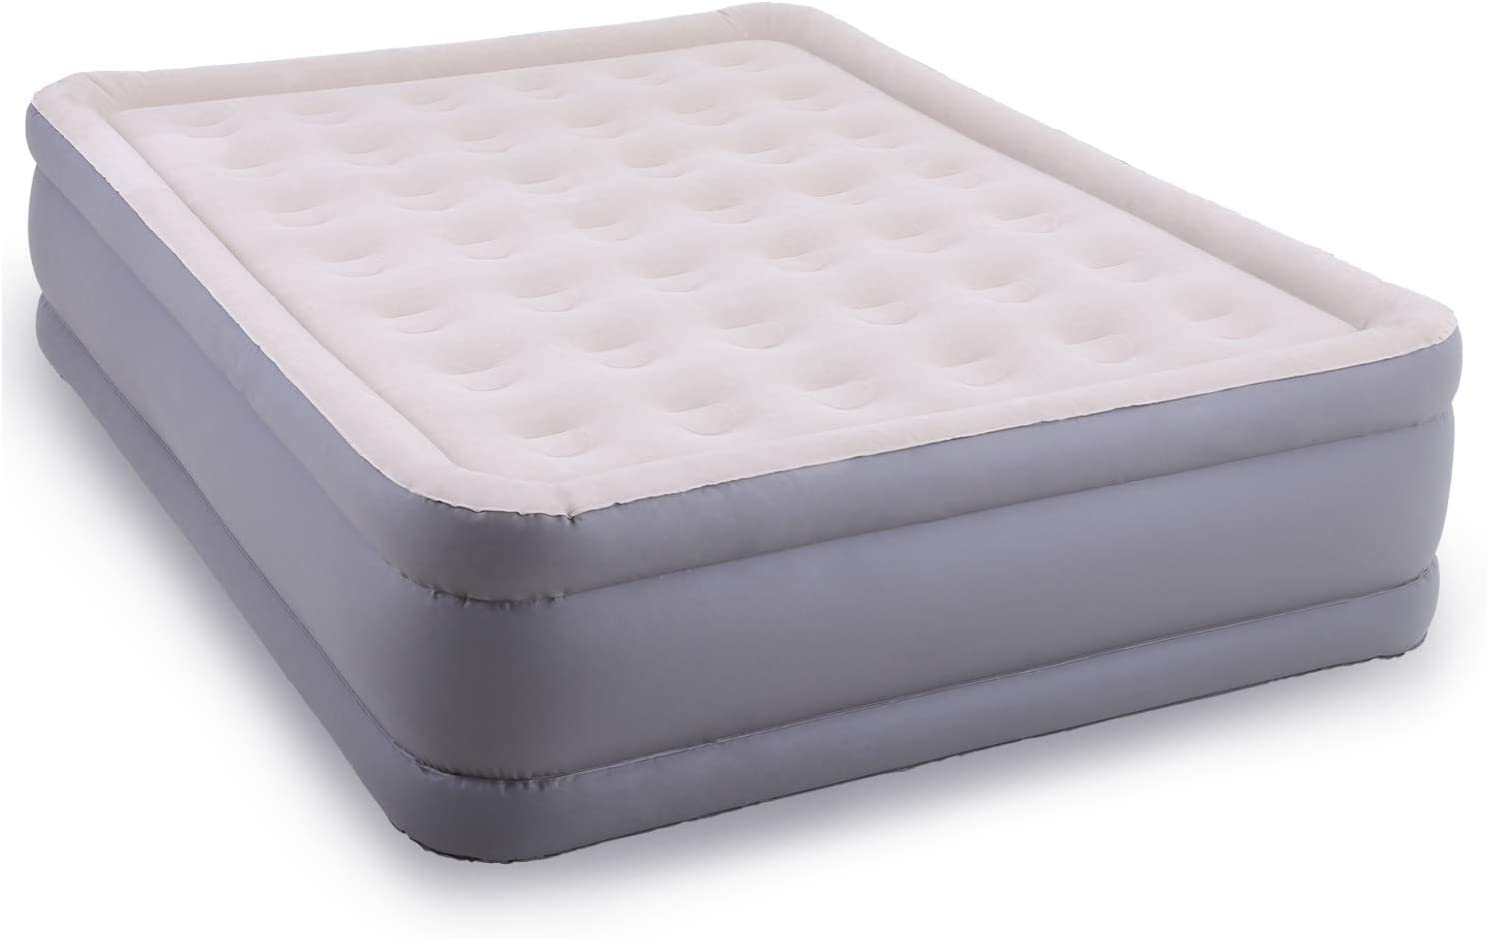 """CAMPING WORLD Air Mattresses Queen Size, Comfort Plush Airbed Build in Electric Pump Inflatable Elevated Built for Camping Bedding Home Travel with Carry Bag 78"""" x 60"""" x 18"""""""